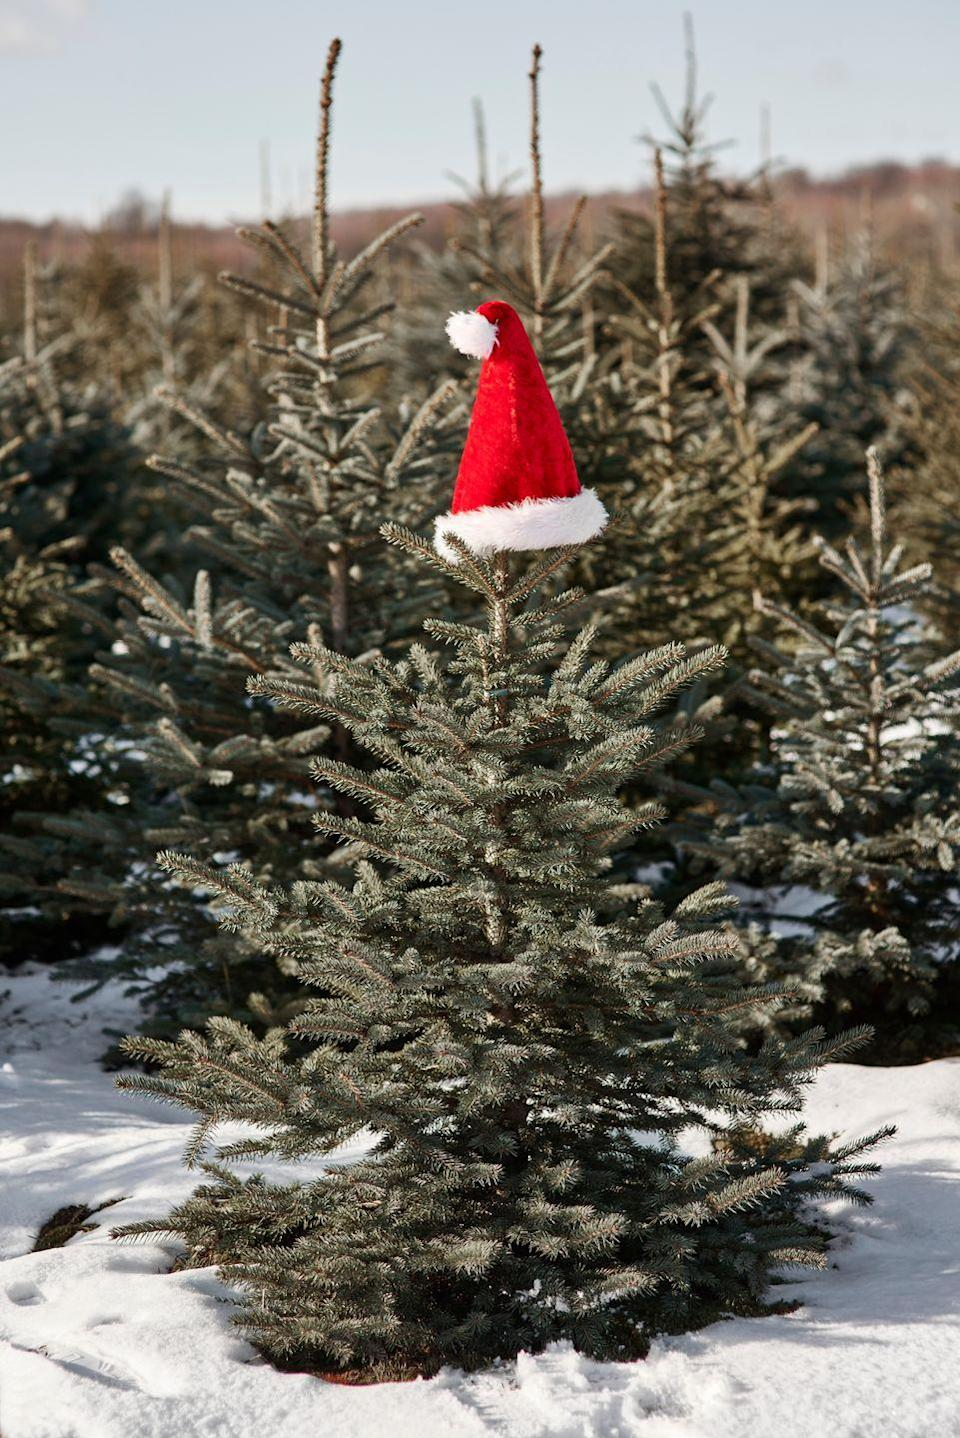 """<p><strong>Oregon, Wisconsin</strong> (November 1-December 24)</p><p>As much fun as choosing a tree sounds, we're most excited about all of the offerings in <strong><a href=""""http://www.hannschristmasfarm.com/weekend-events/"""" rel=""""nofollow noopener"""" target=""""_blank"""" data-ylk=""""slk:Hann's Christmas Tree Farm"""" class=""""link rapid-noclick-resp"""">Hann's Christmas Tree Farm</a></strong>'s Christmas store. There are countless items to decorate your home, and you can fill your belly with fresh popcorn and a cup of complimentary hot cider. Santa and Mrs. Claus will also be there to say hi to your kids on the three weekends after Thanksgiving. <br></p>"""